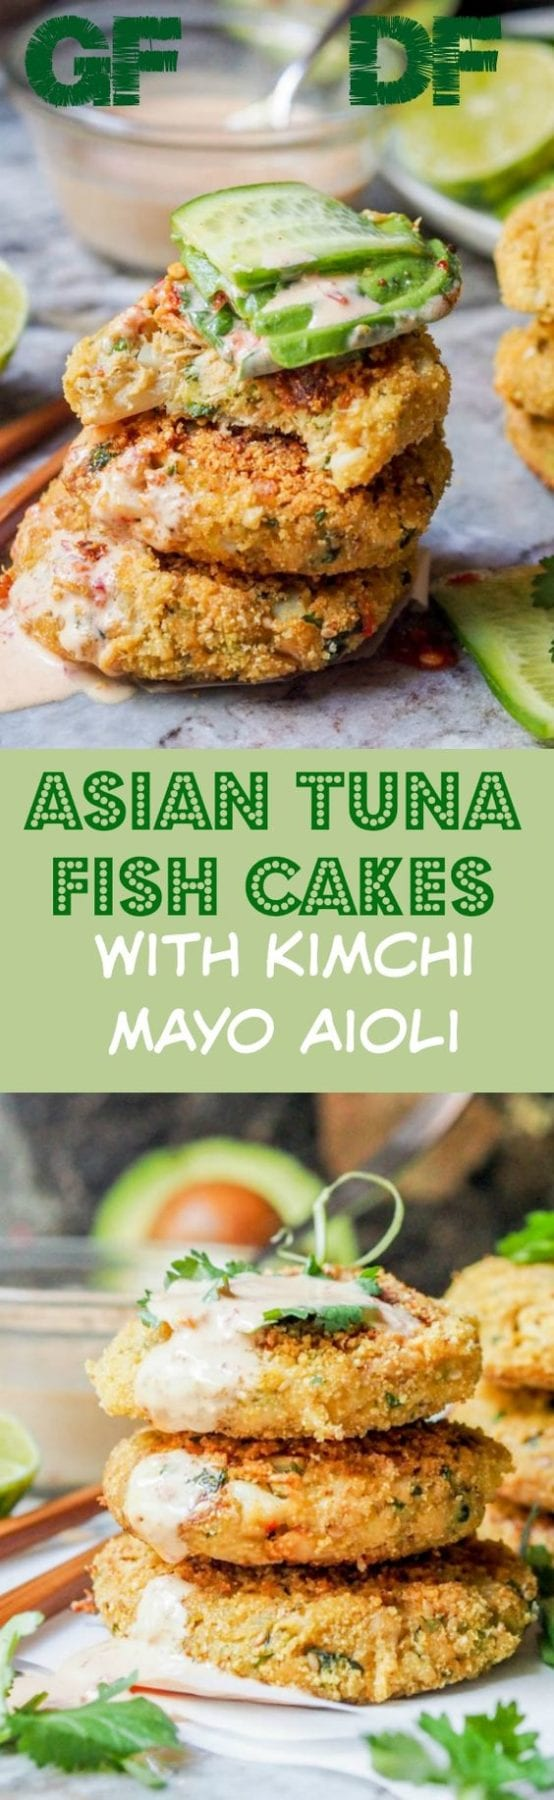 What To Serve With Tuna Fish Cakes